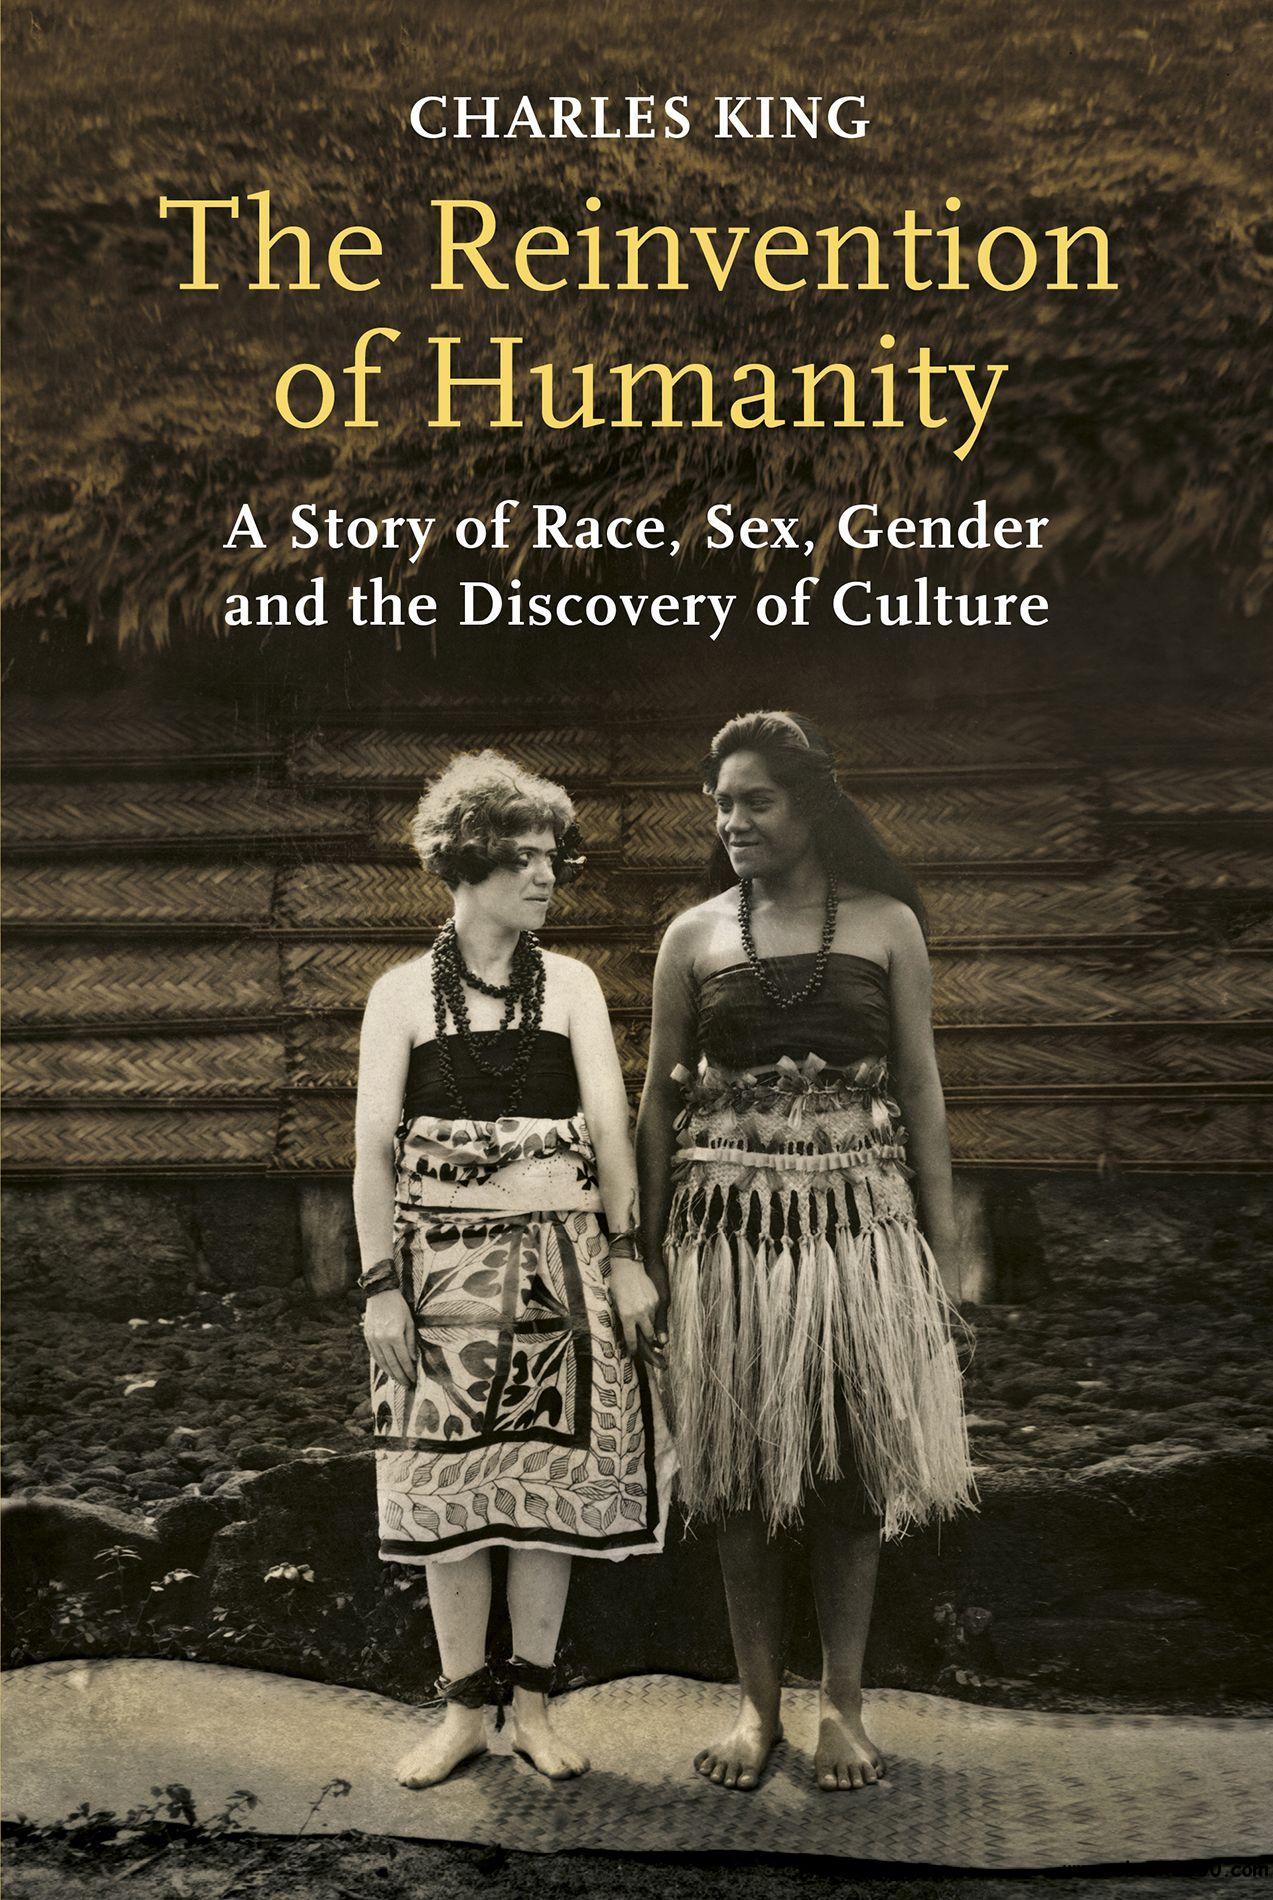 The Reinvention of Humanity: A Story of Race, Sex, Gender and the Discovery of Culture